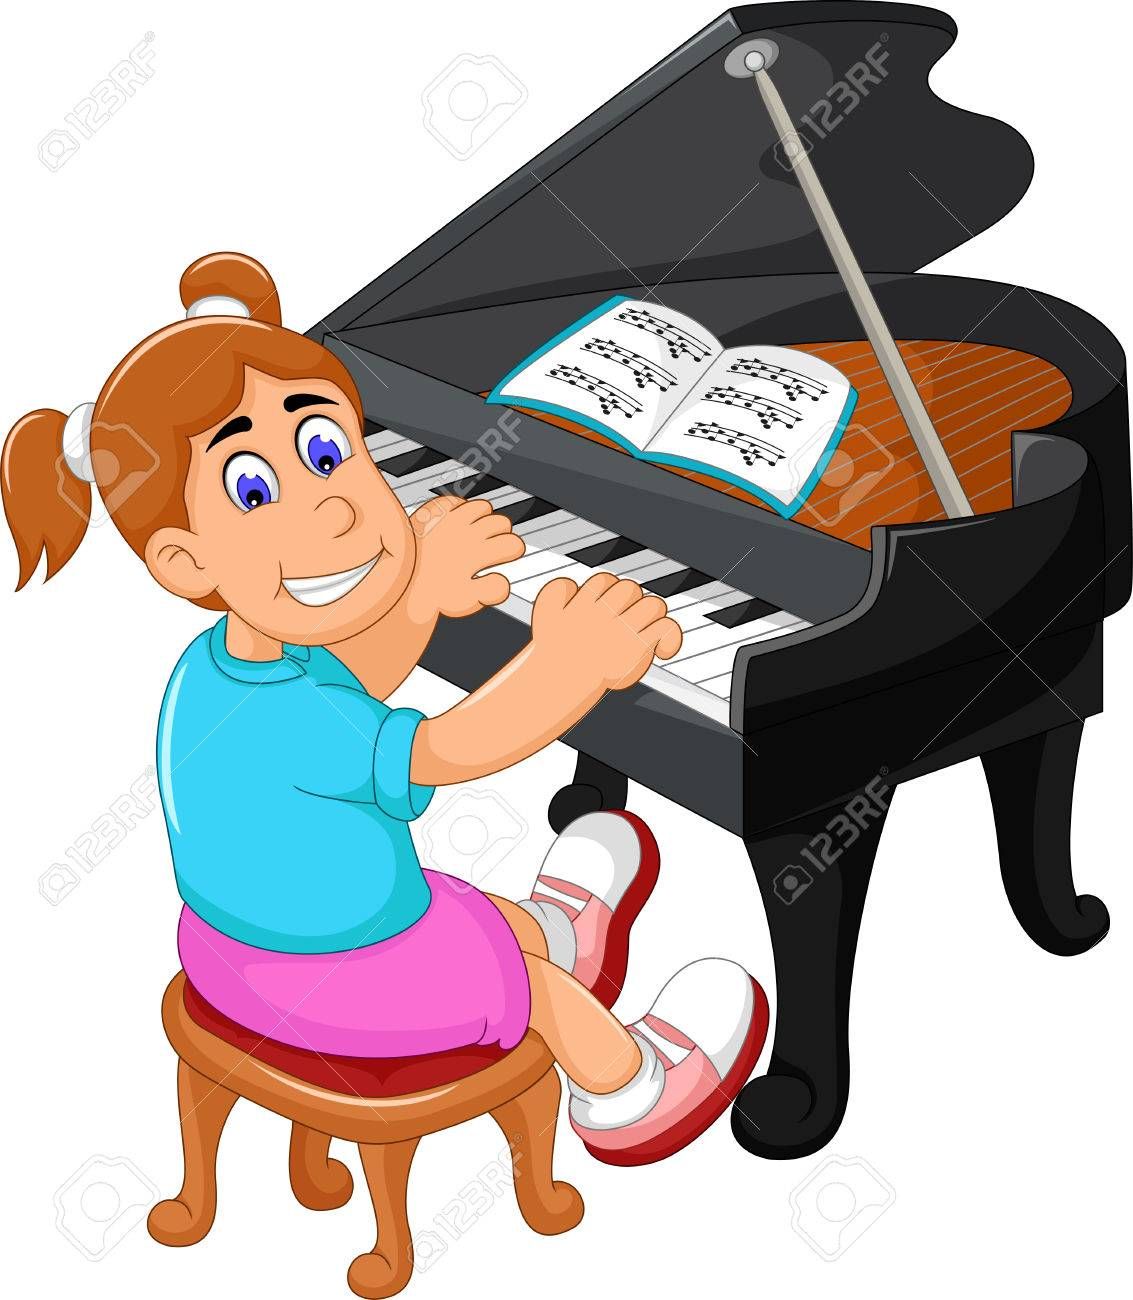 Play piano clipart 4 » Clipart Station.